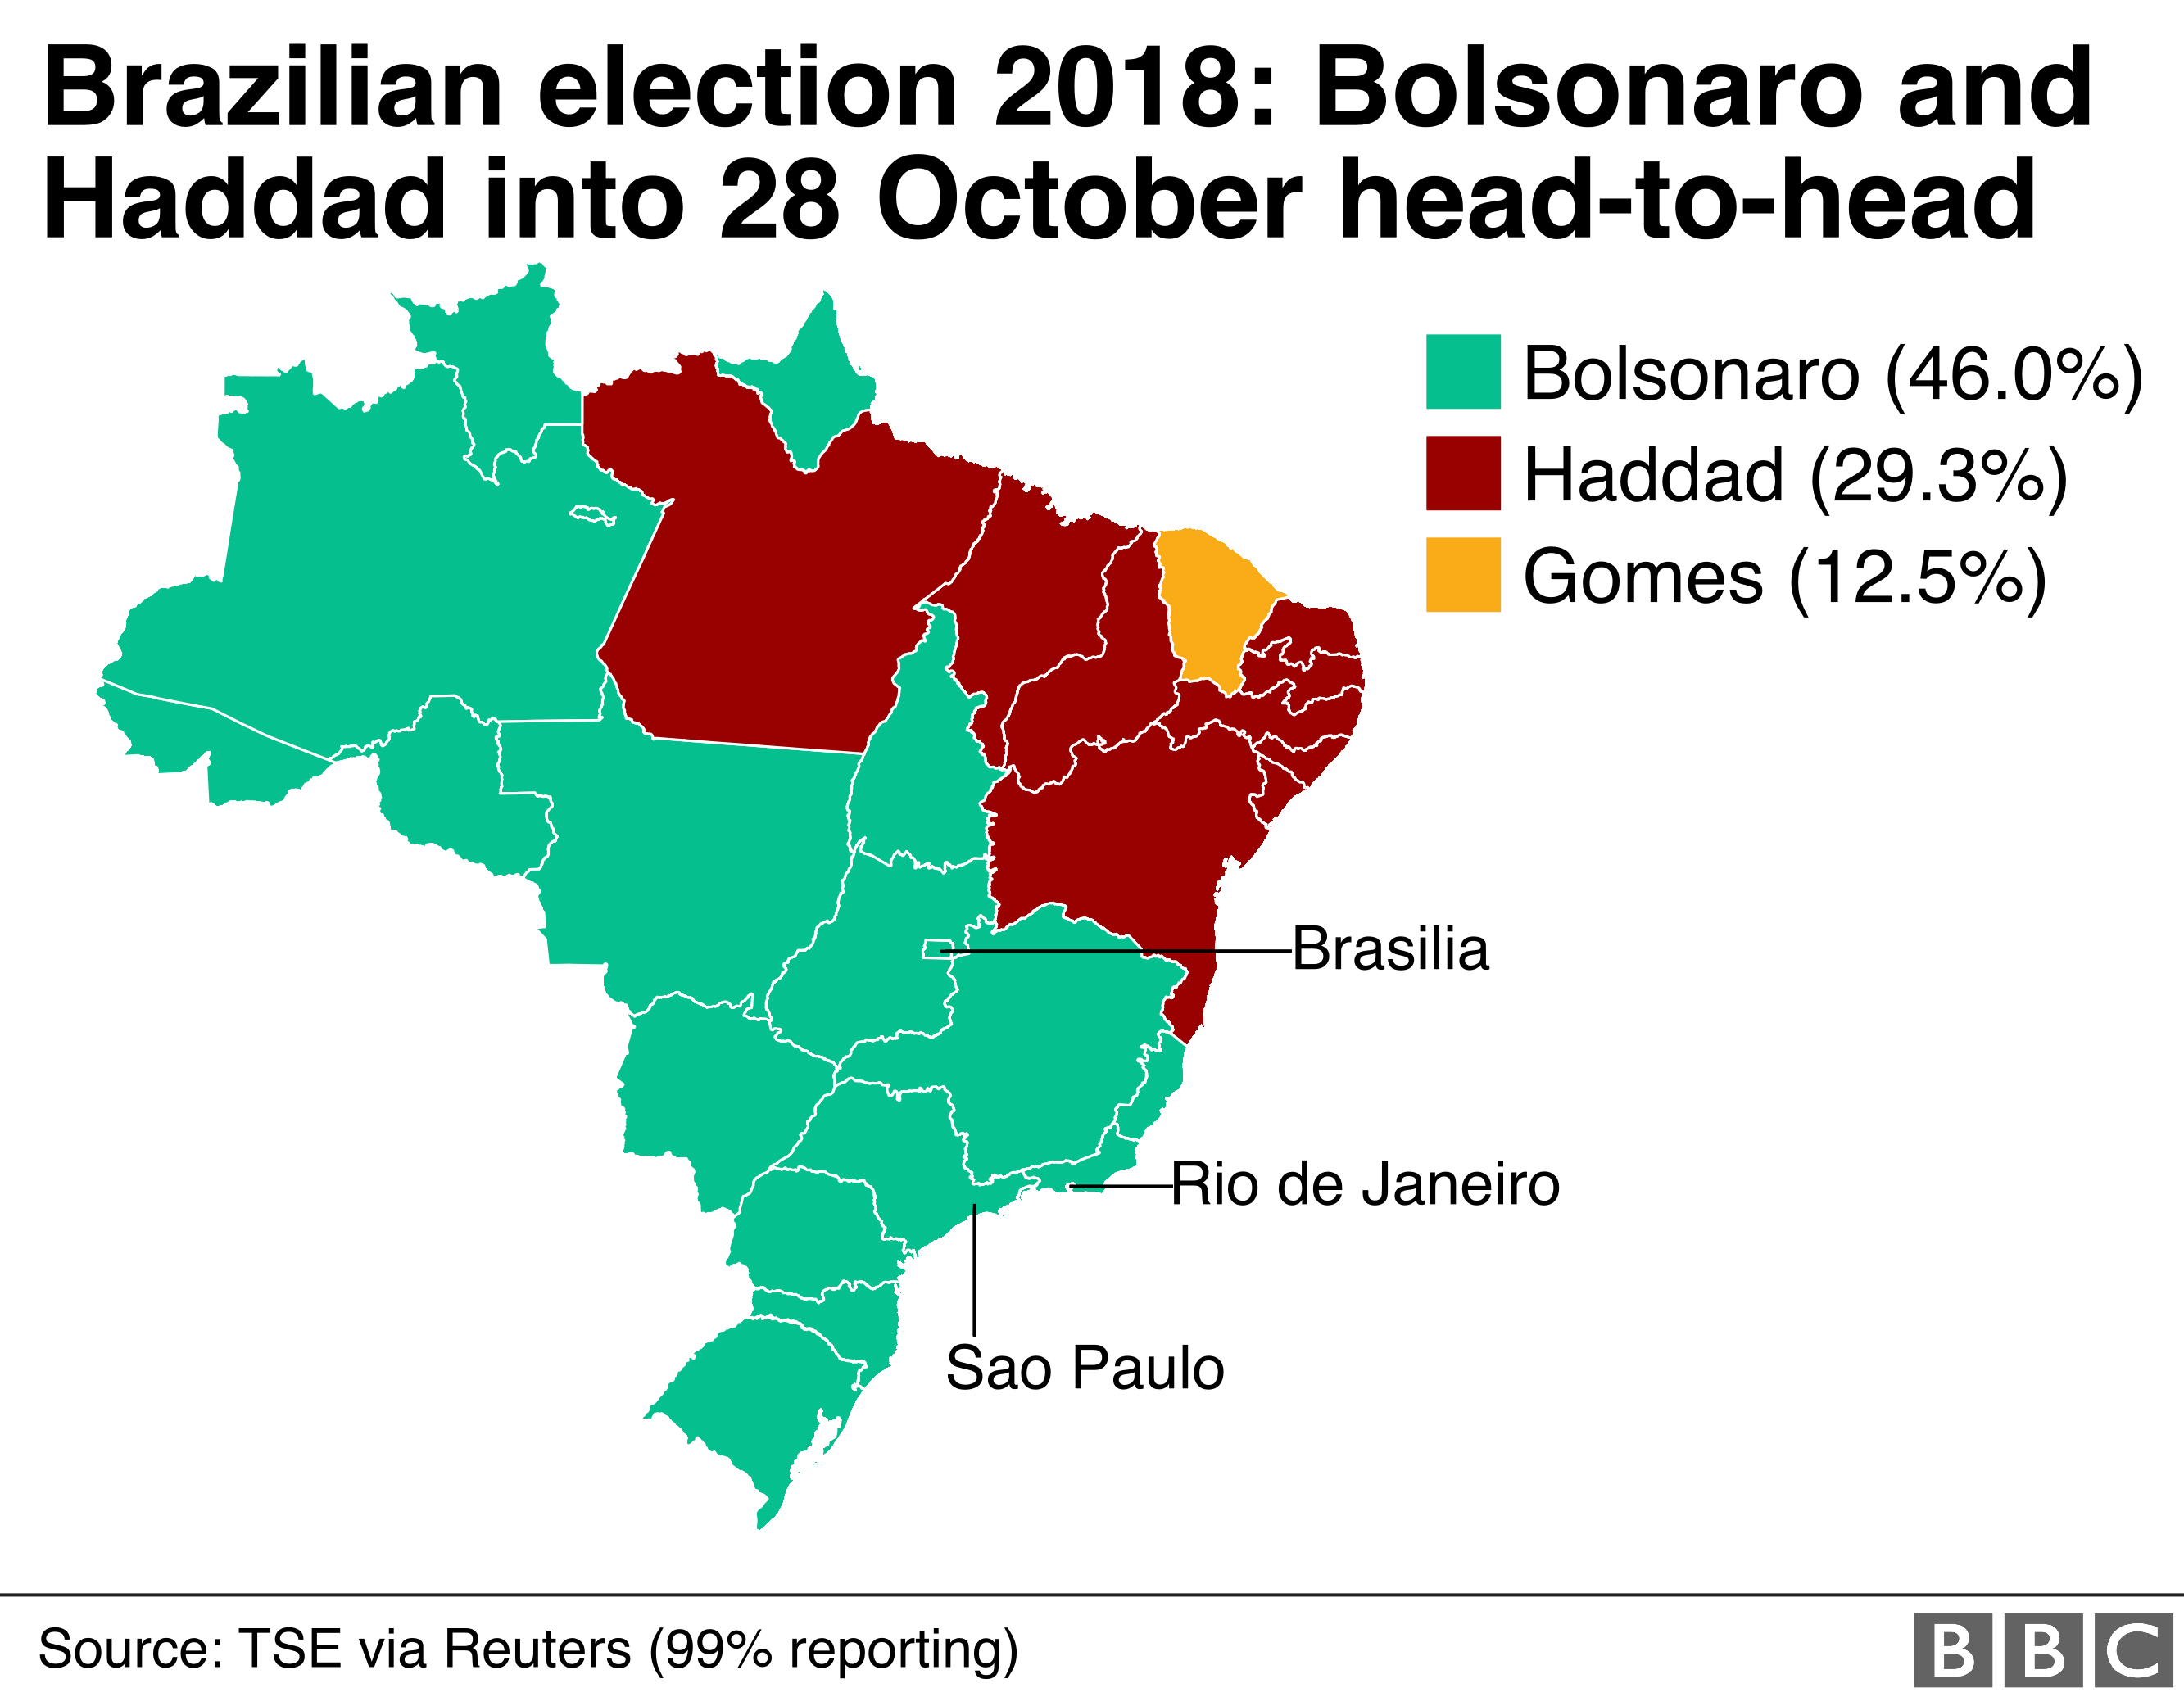 Haddad won in nine states in the north east of Brazil, while Bolsonaro dominated the rest of the country. Gomes also won his home state of Ceara